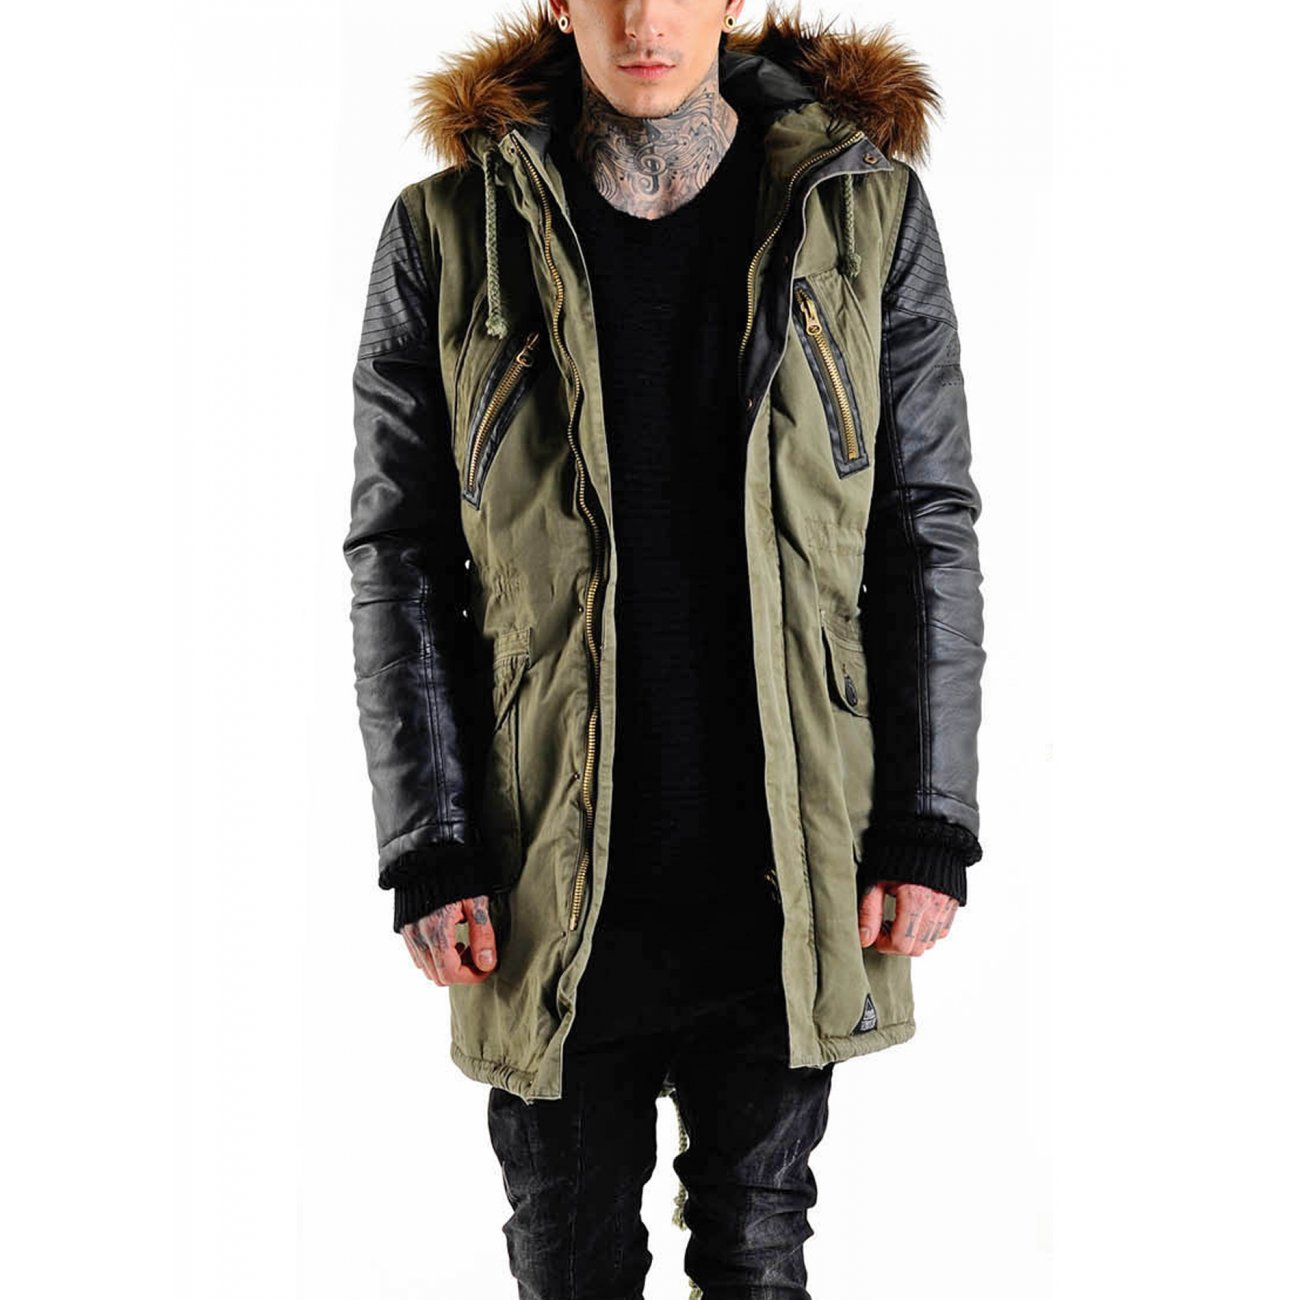 vsct winterjacke herren parka mit rmel im lederlook khaki. Black Bedroom Furniture Sets. Home Design Ideas